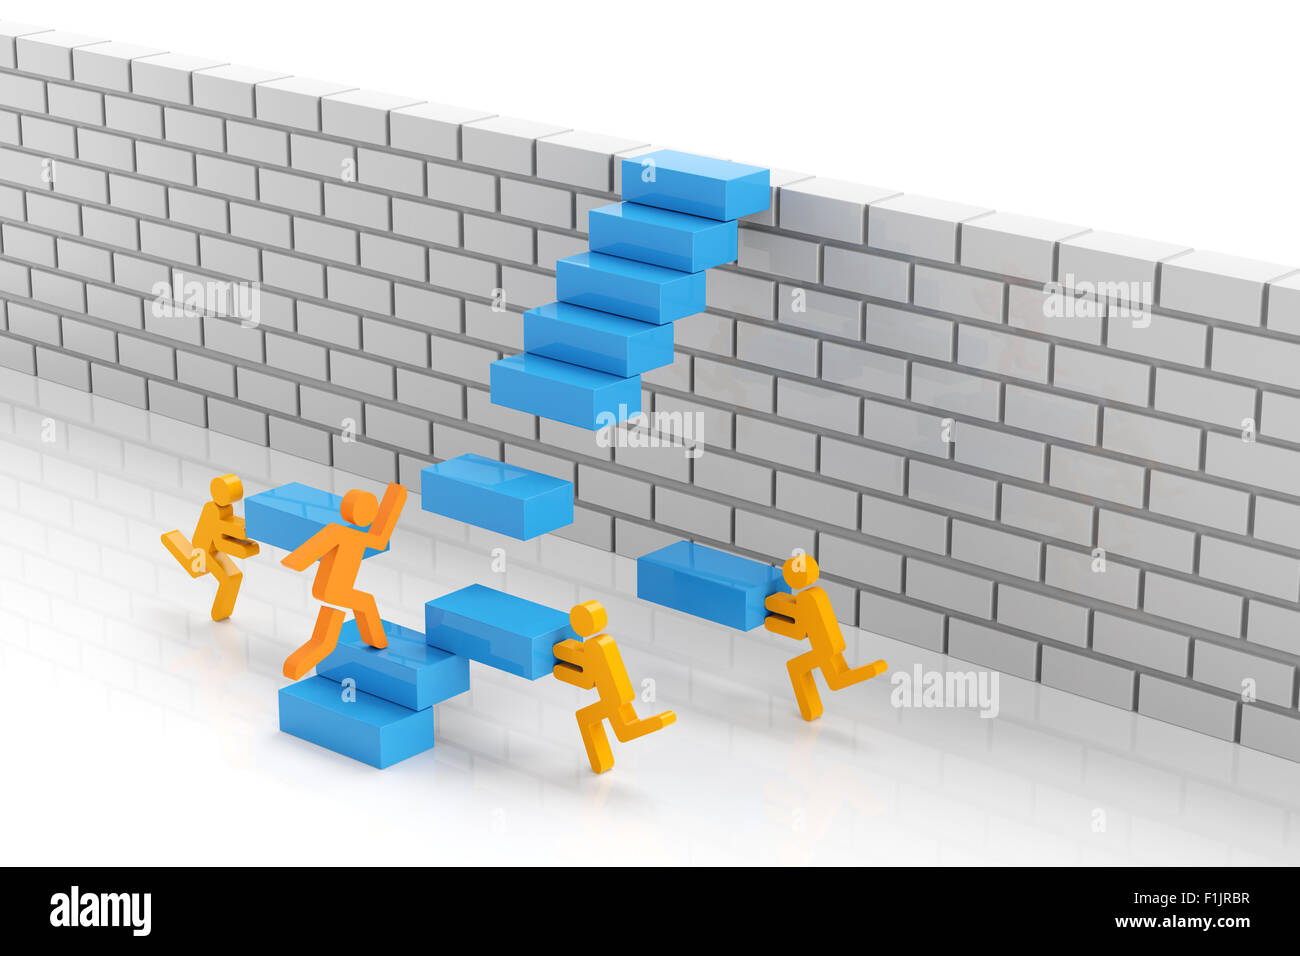 Teamwork to overcome obstacle - Stock Image